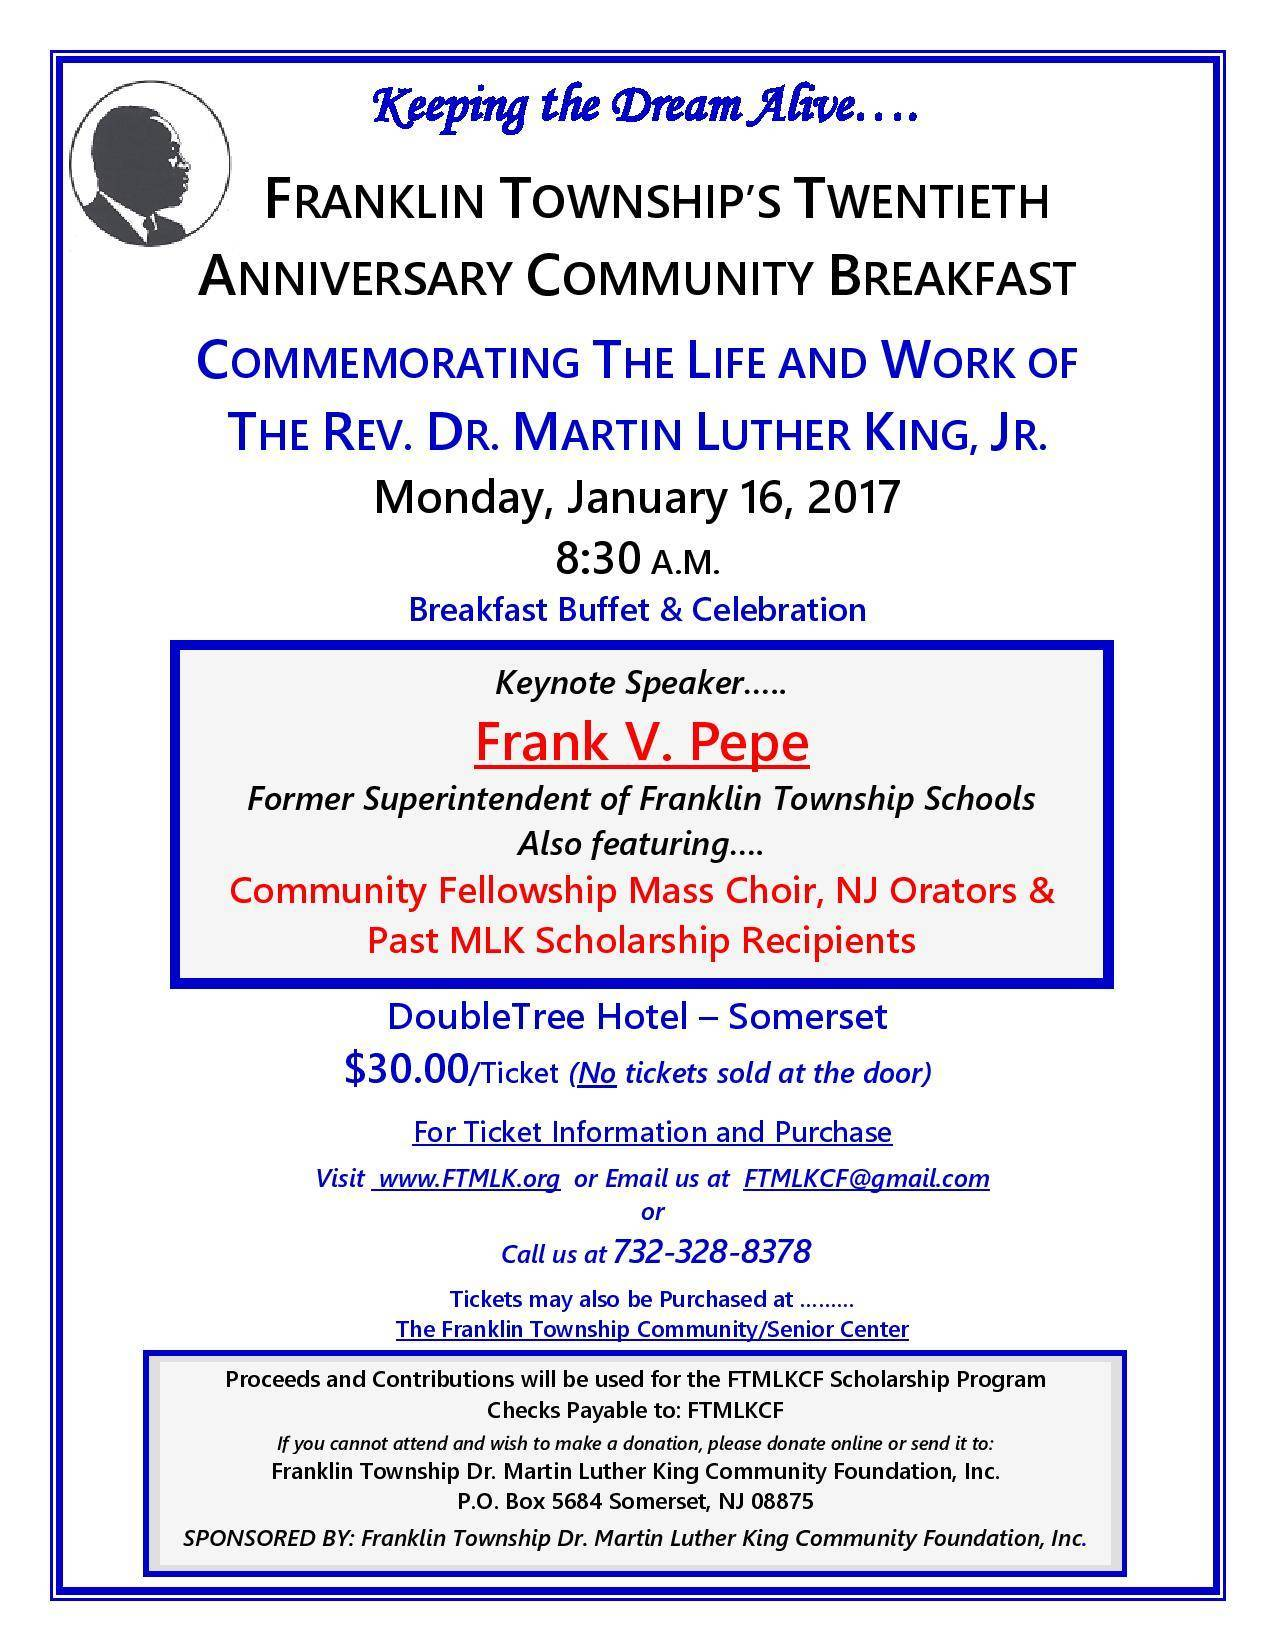 862a43a07dbd04513819_MLK_Breakfast_Flyer__Jan_2017.jpg